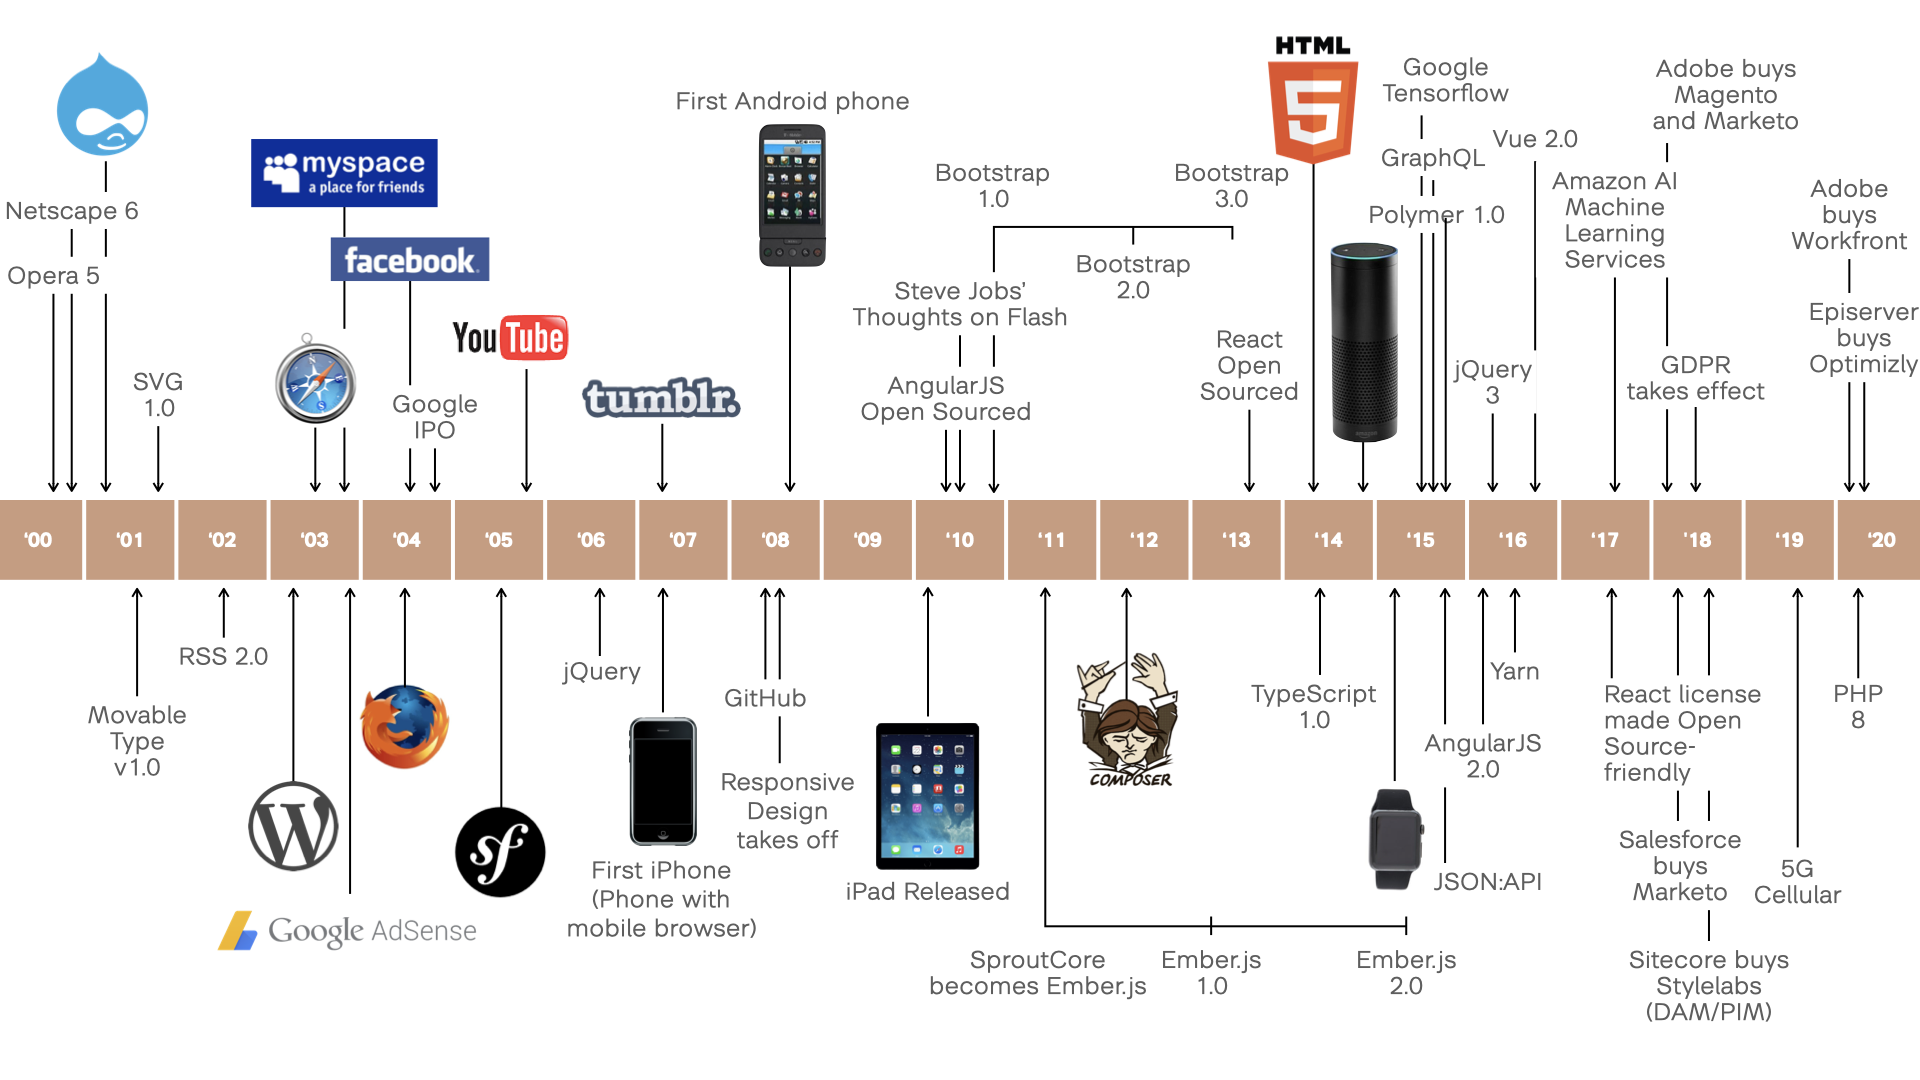 A timeline with key technology events that impacted Drupal. Examples include the first mobile browser, social media, etc.